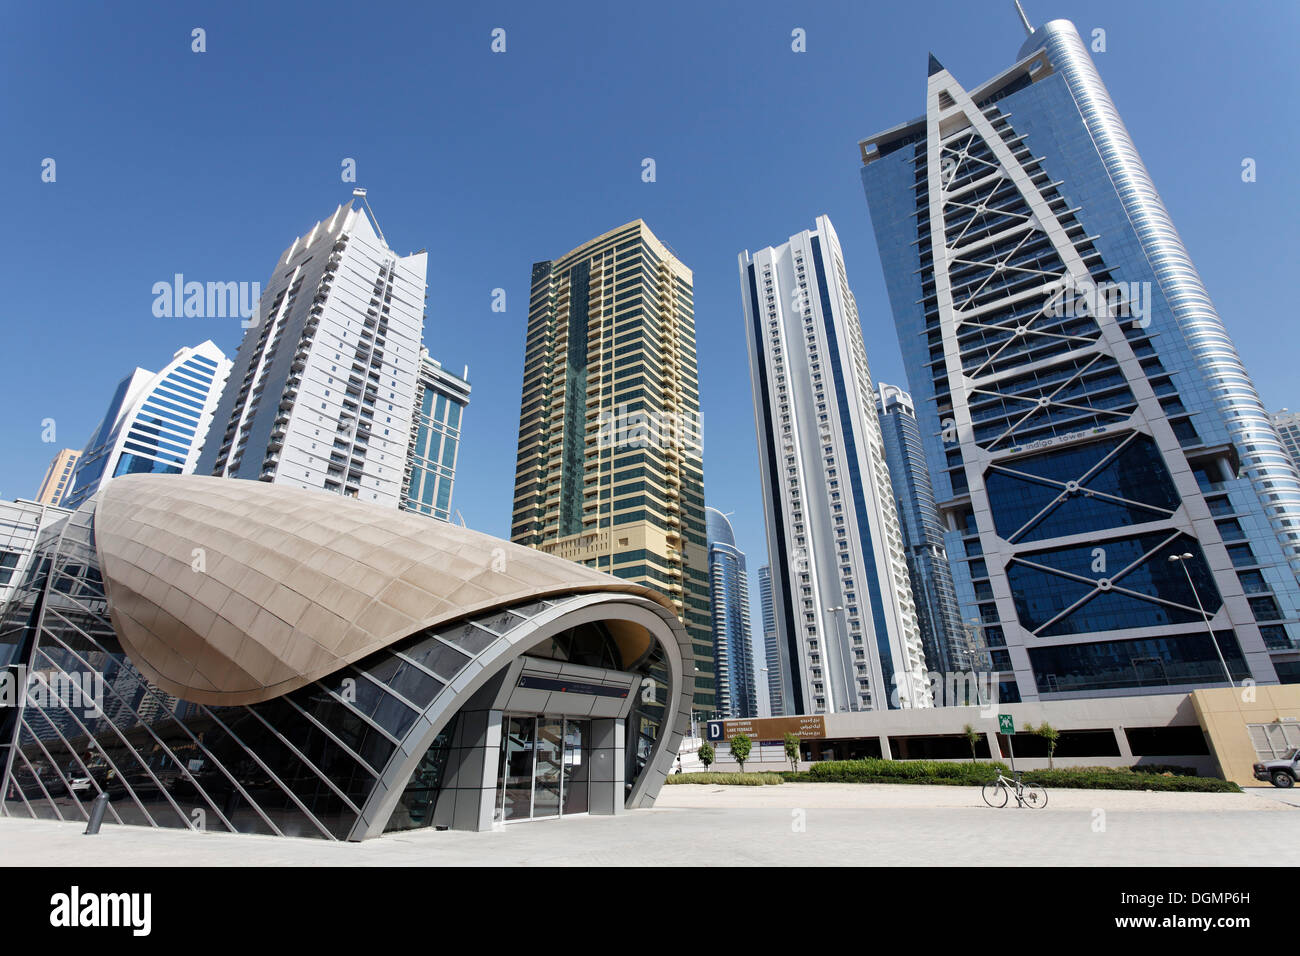 emirates towers metro station stock photos emirates towers metro station stock images alamy. Black Bedroom Furniture Sets. Home Design Ideas